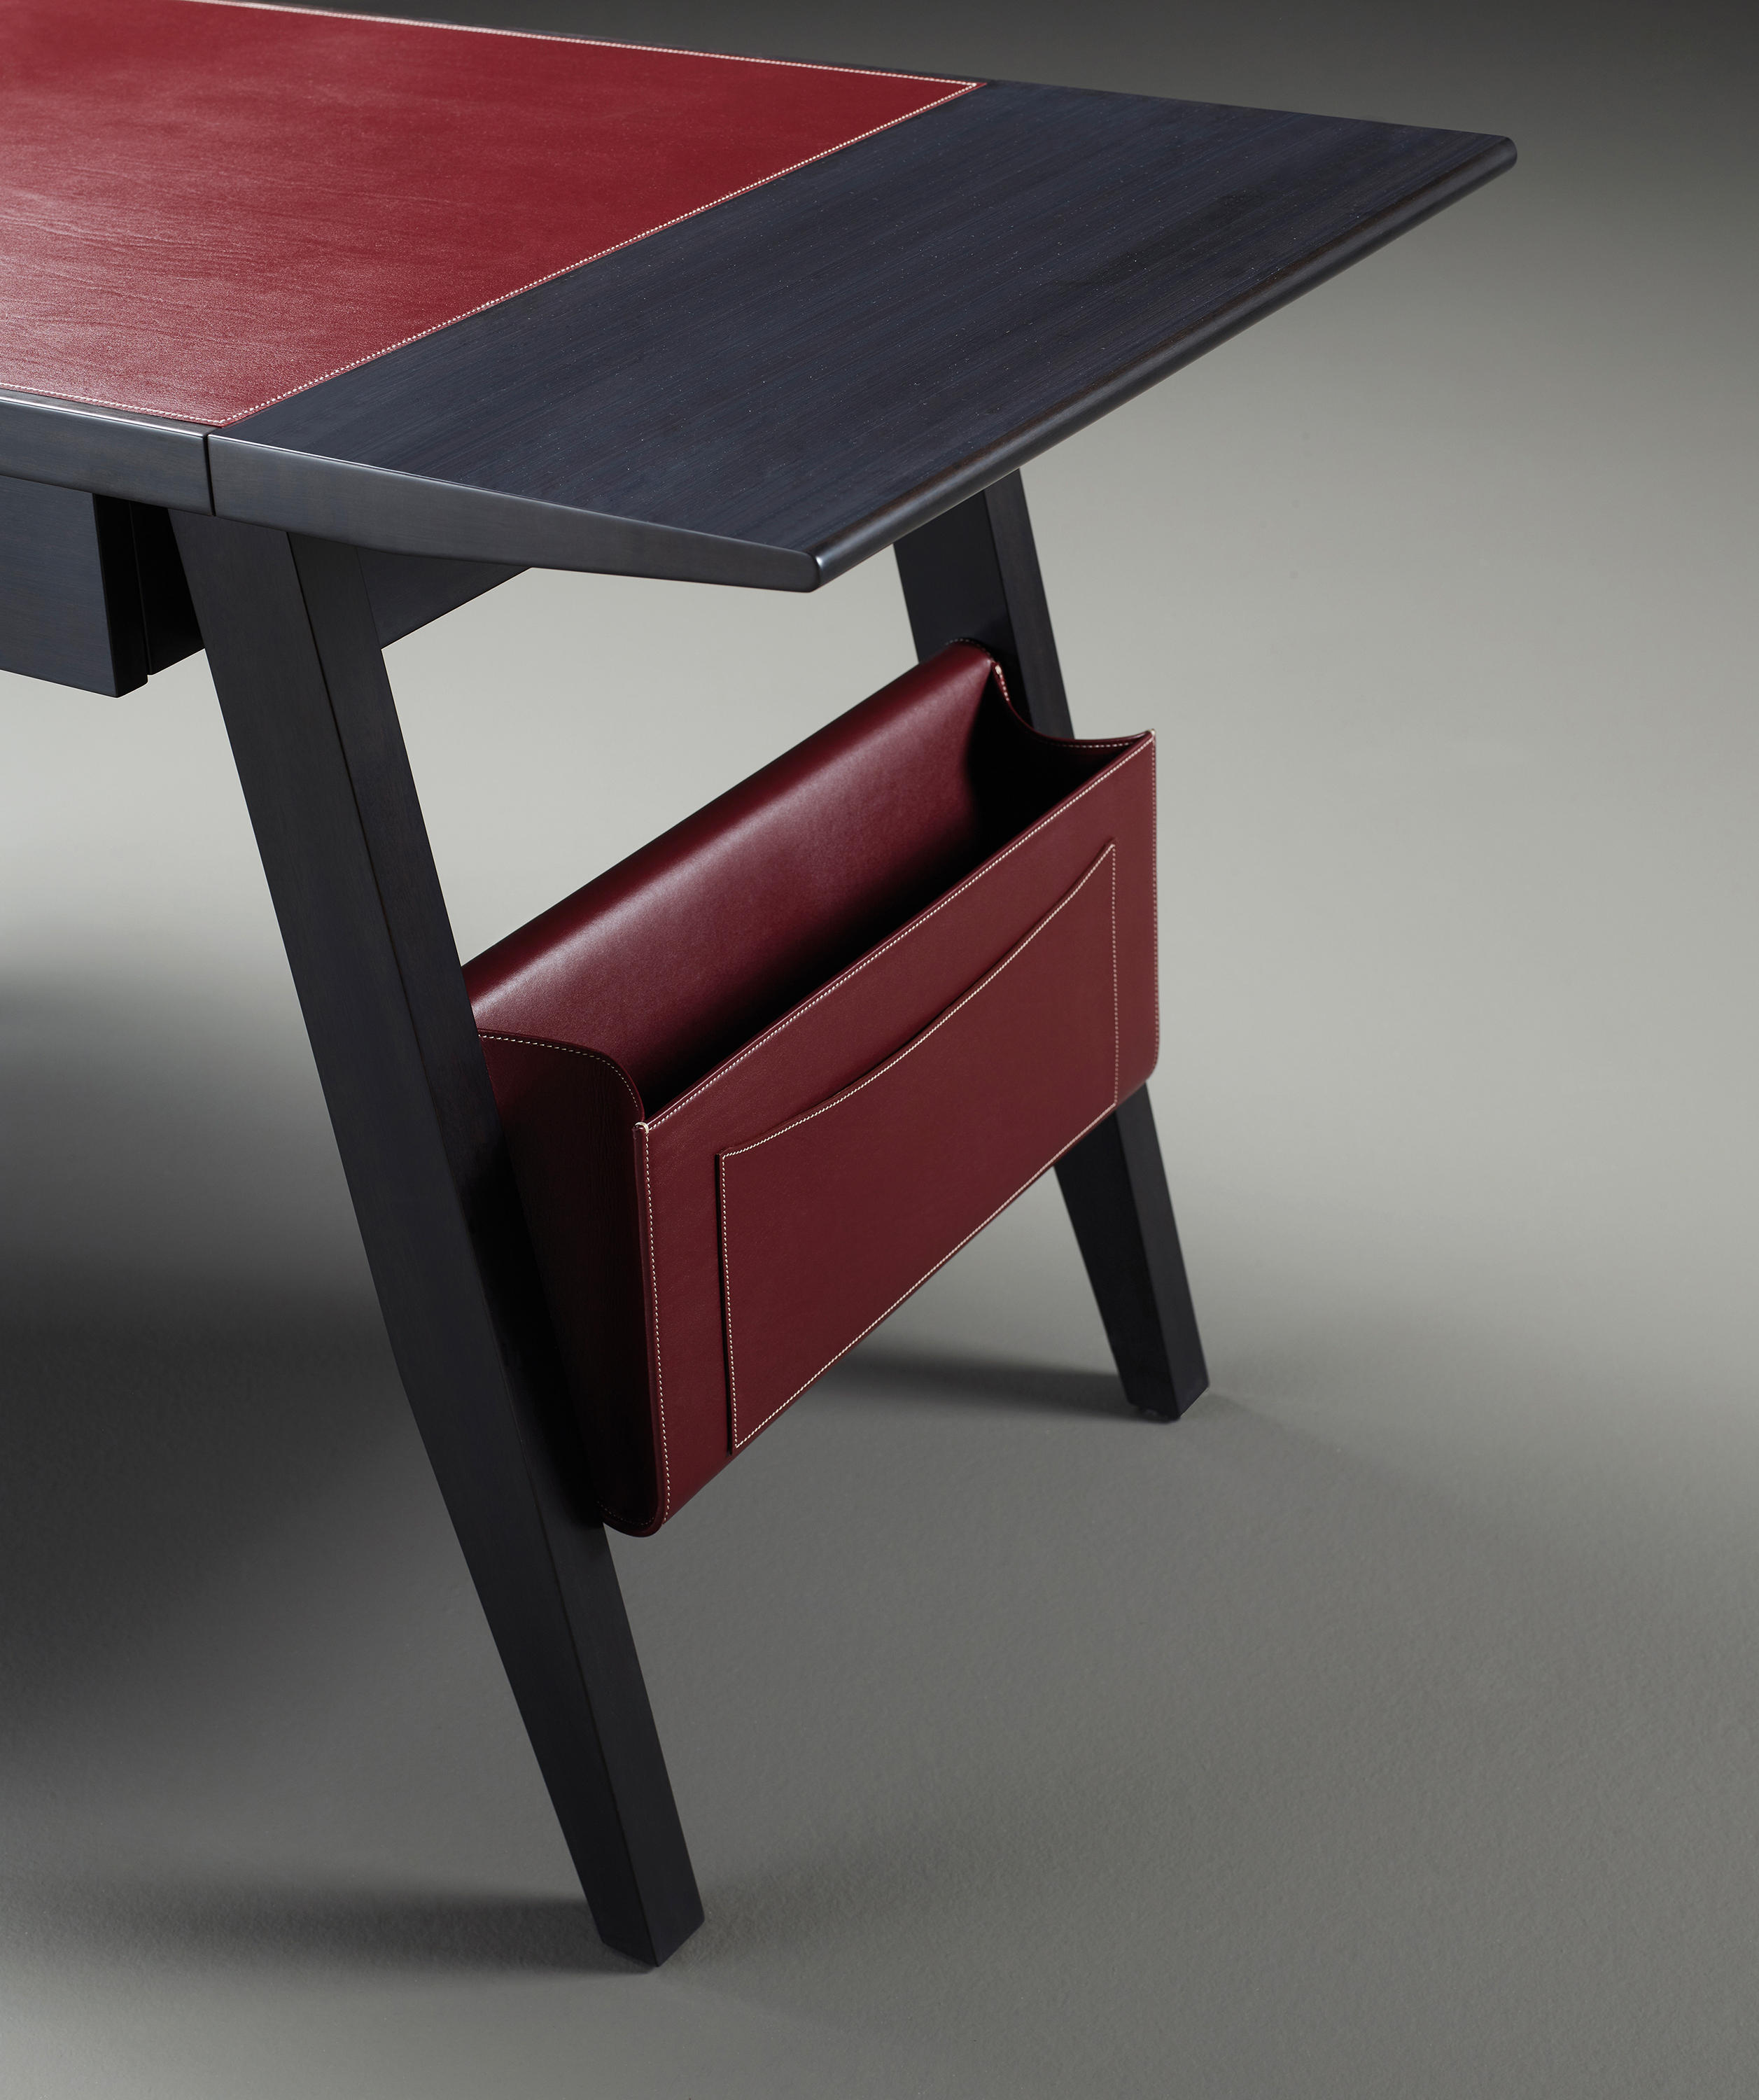 ISAAC WRITING DESK Desks From Promemoria Architonic